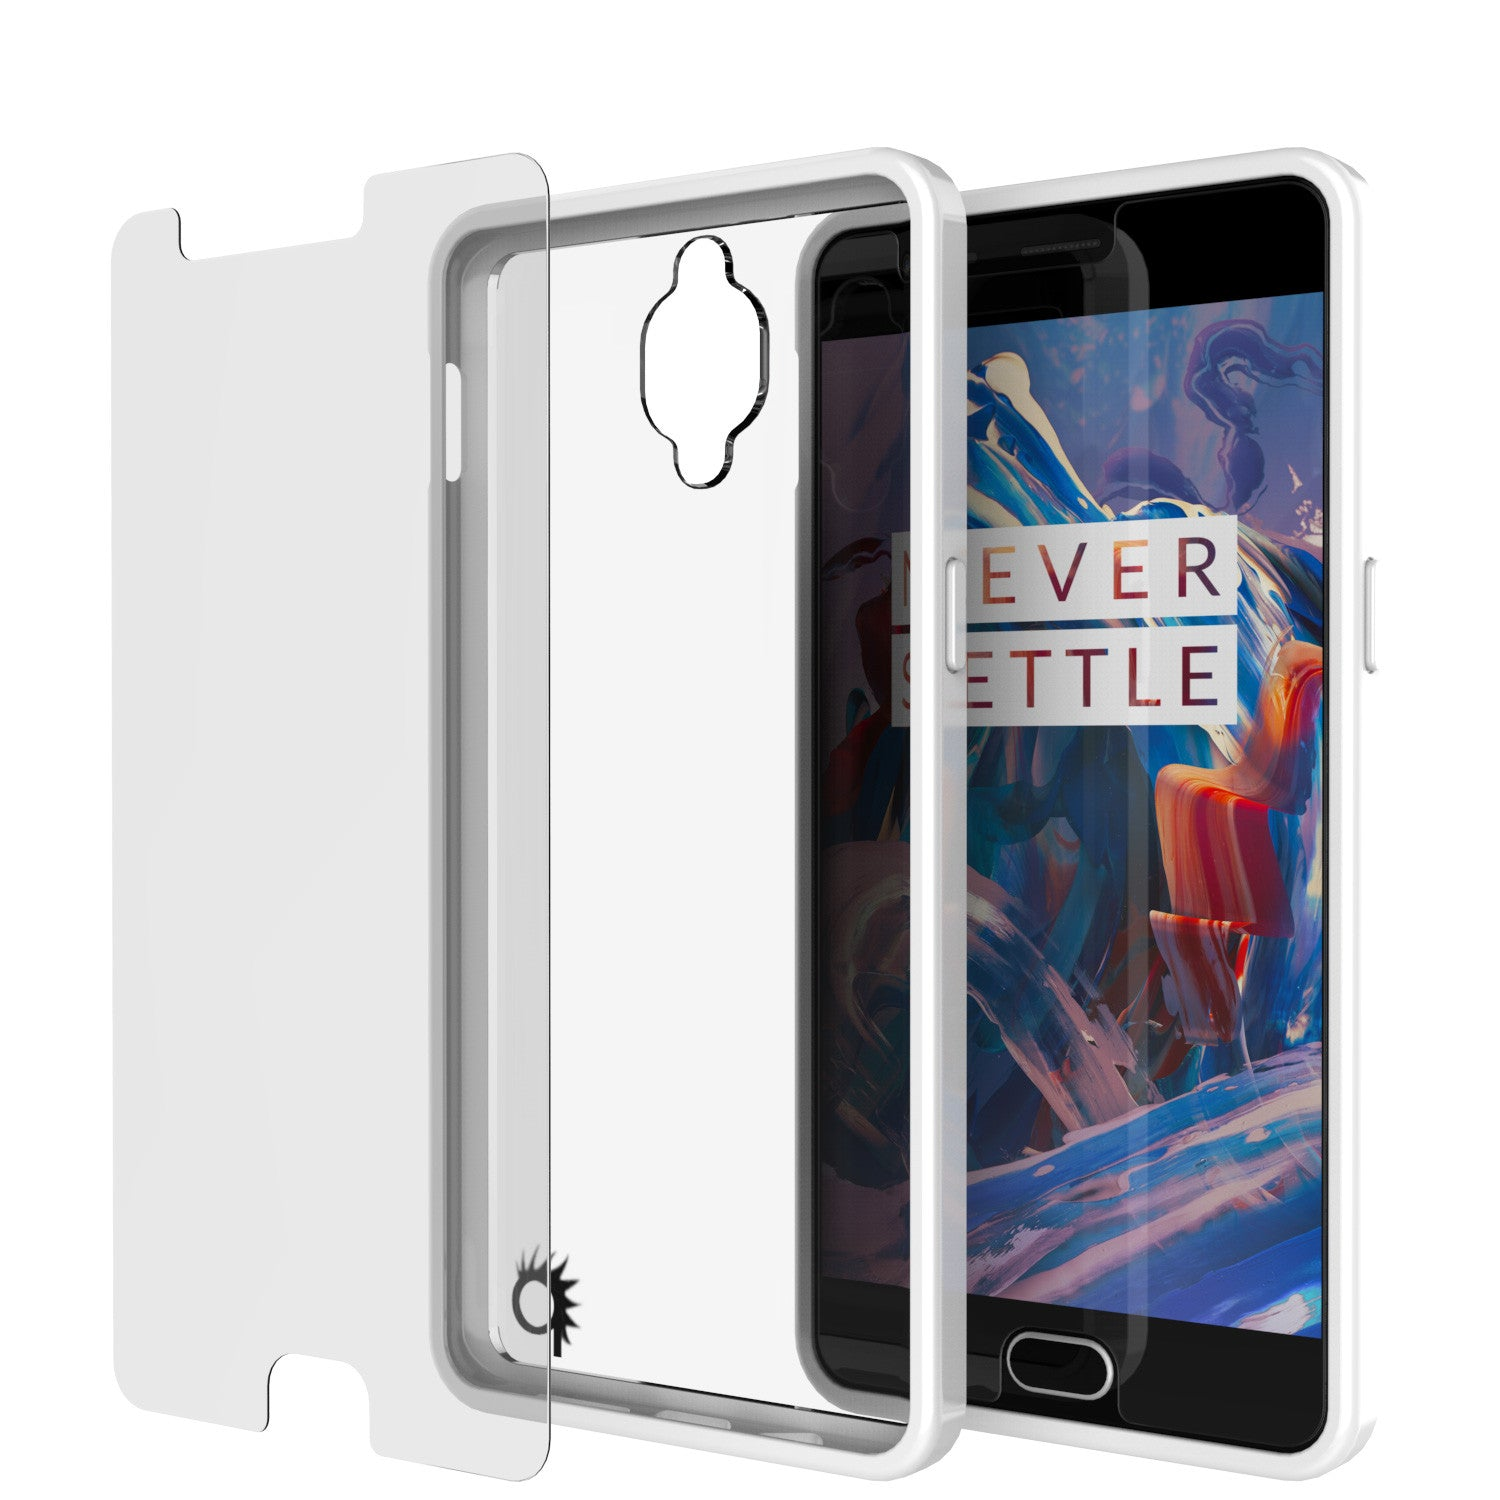 OnePlus 3 Case Punkcase® LUCID 2.0 White Series w/ SHIELD GLASS Lifetime Warranty Exchange